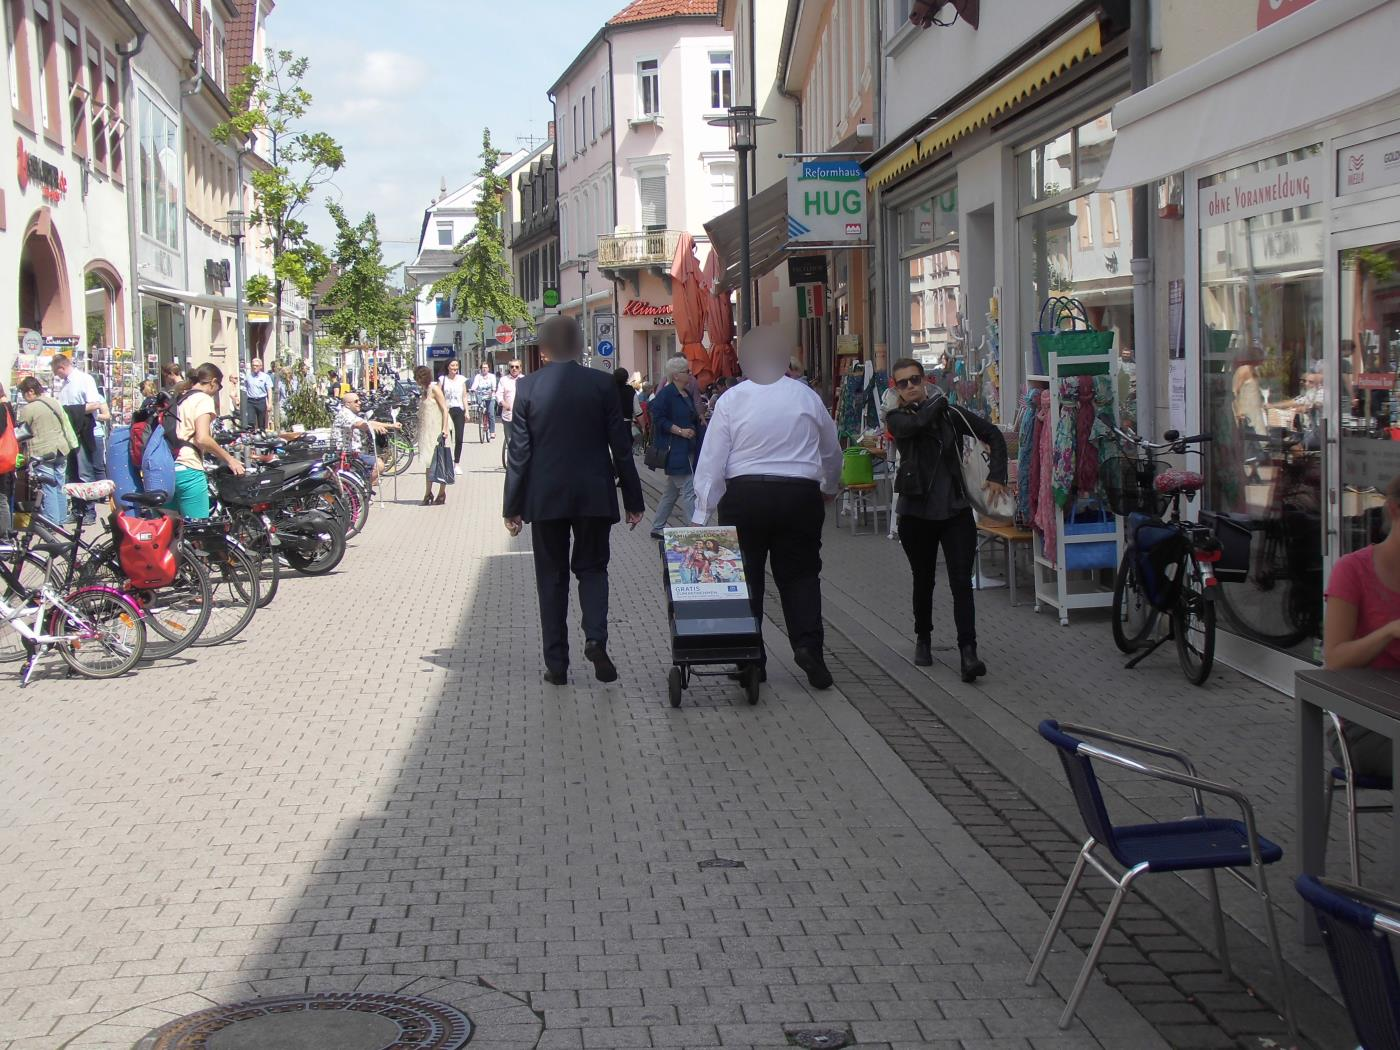 Flea market in Speyer and Jehovah's Witnesses with ancient literature